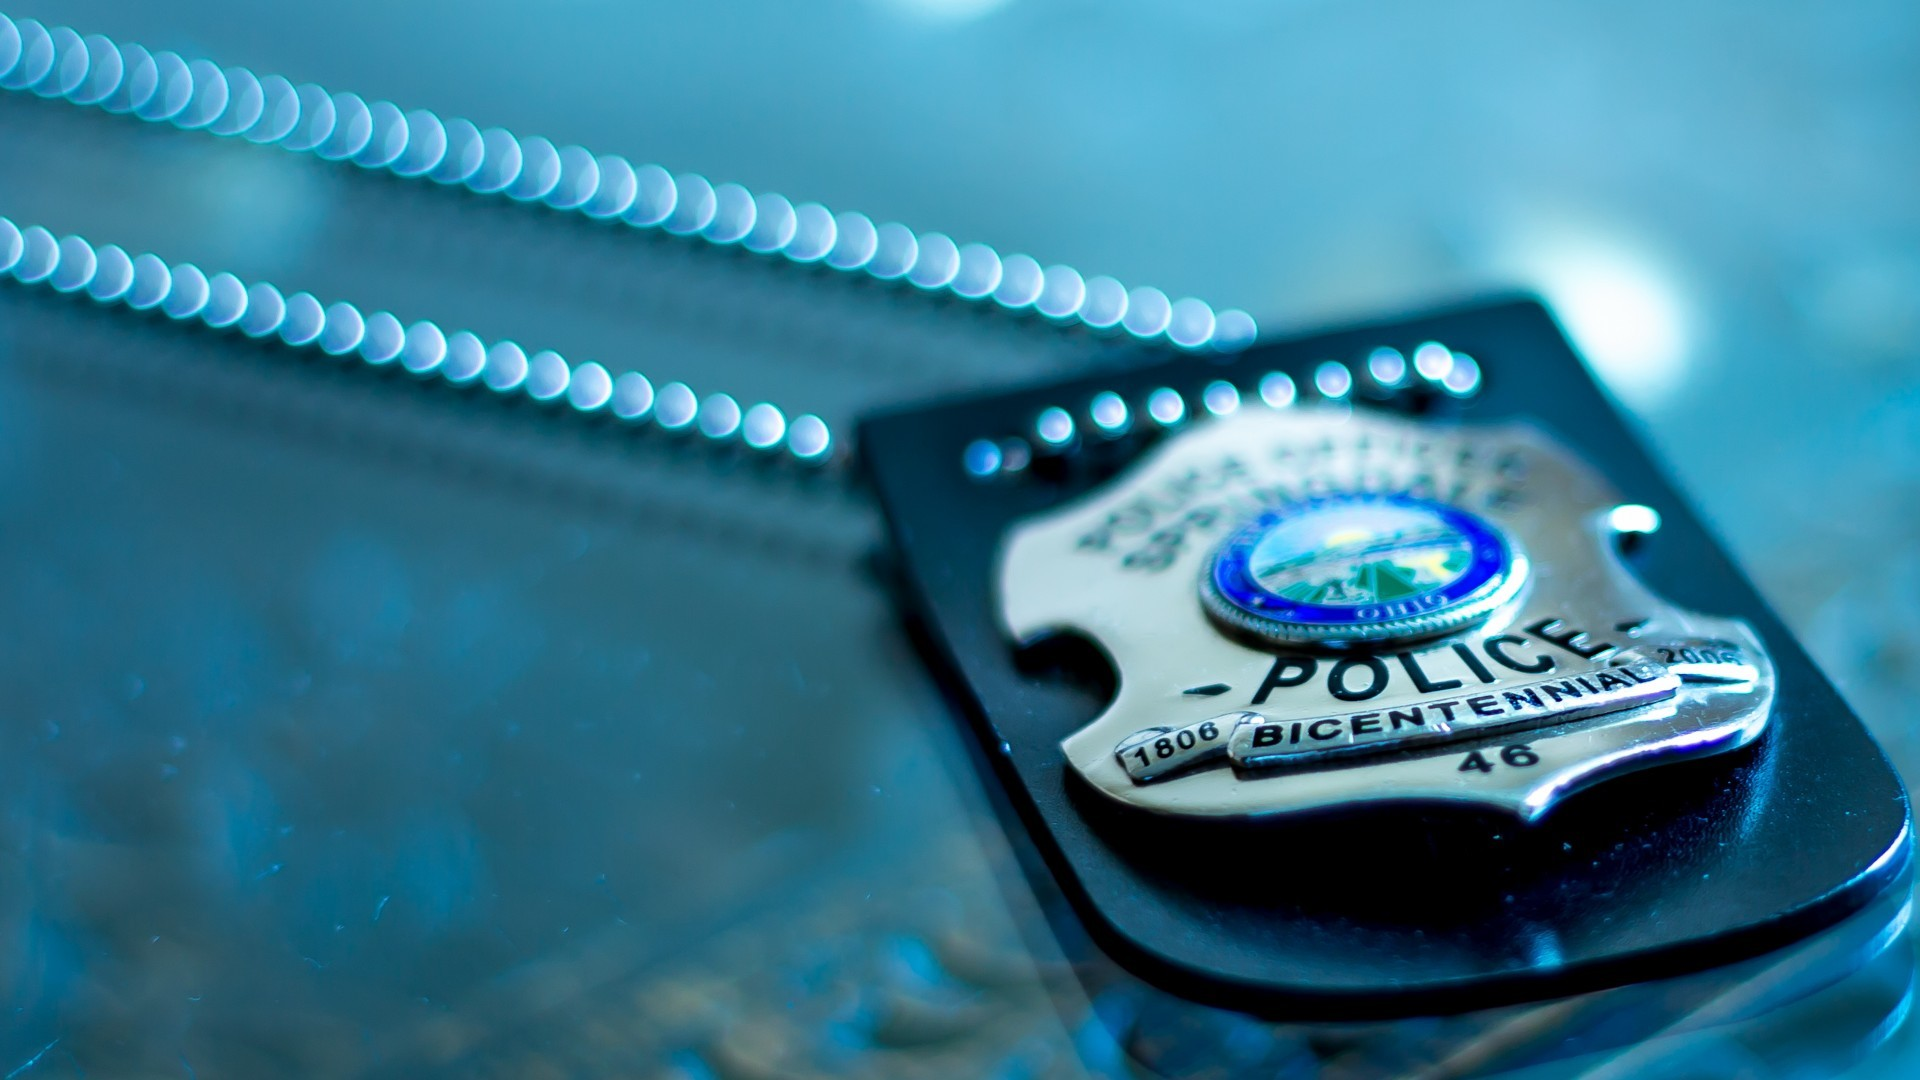 Police Badge Background For Wallpaper 89475 #11642 Wallpaper | Cool .